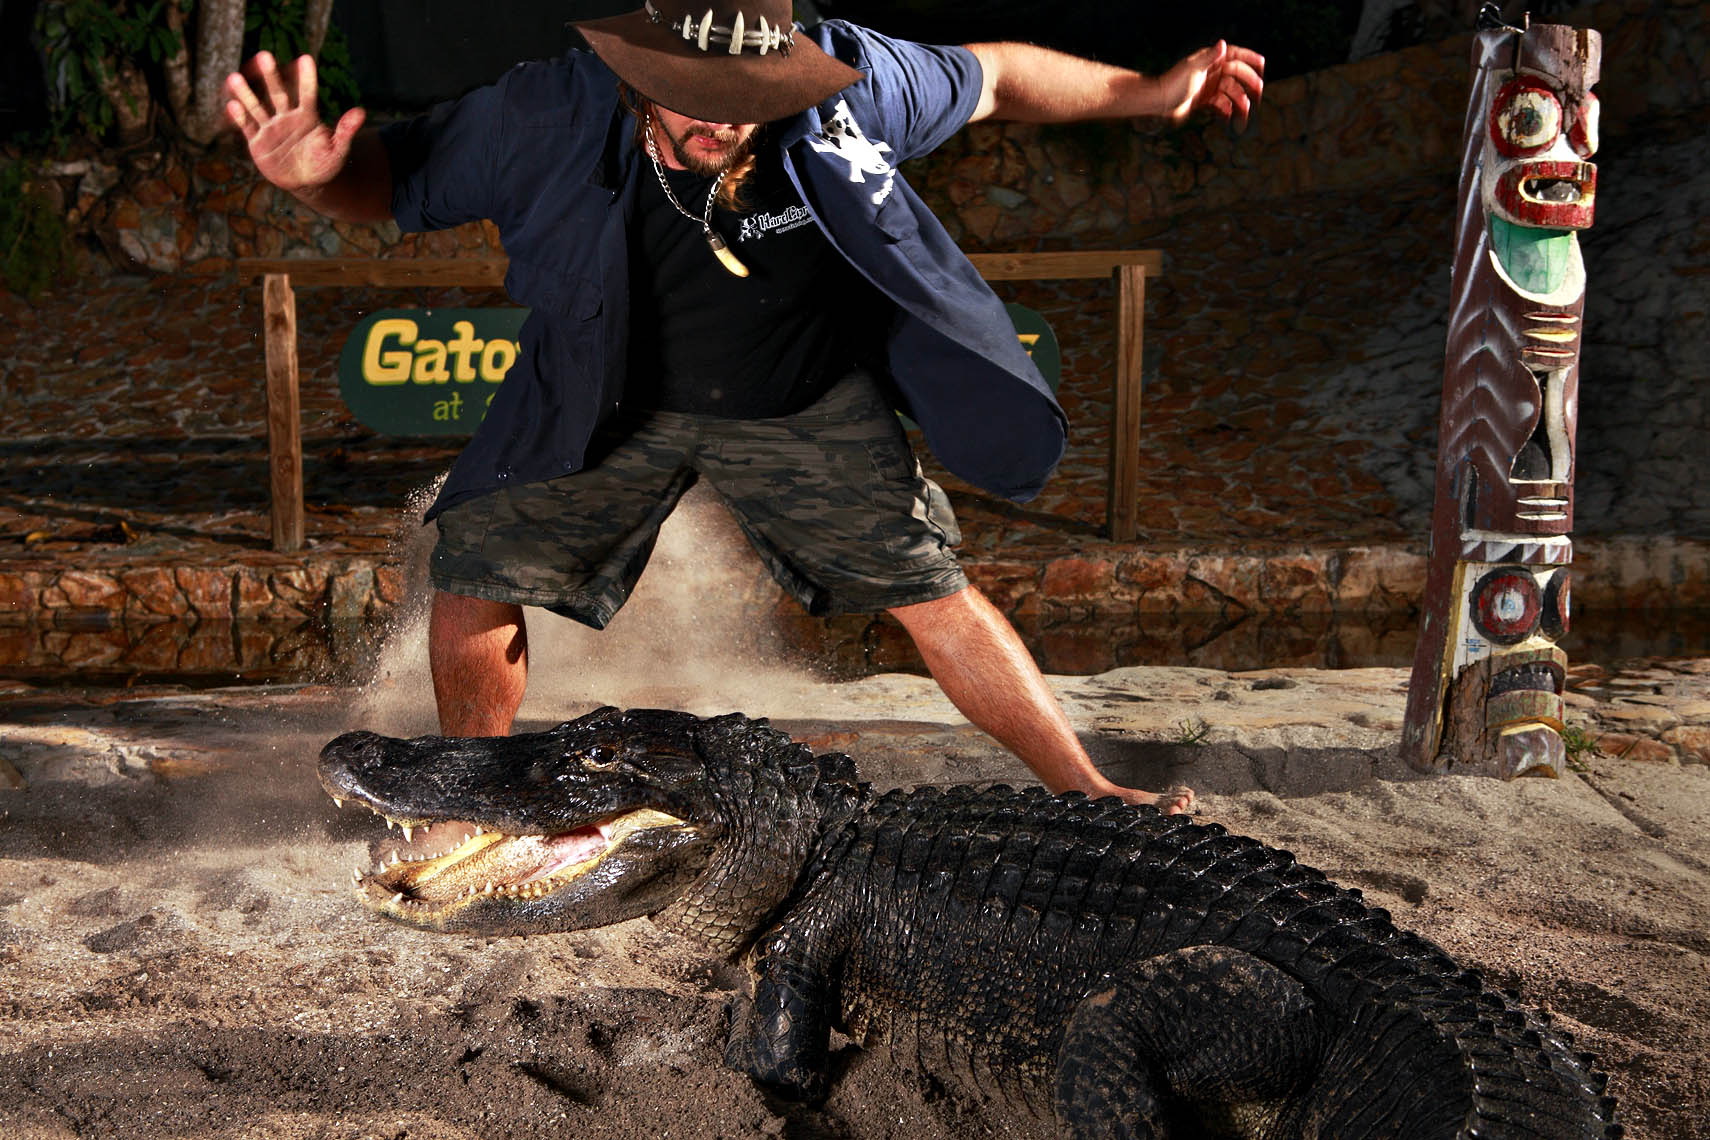 Miami commercial photographer Bob Croslin photographs Gator Boys Jimmy Riffle